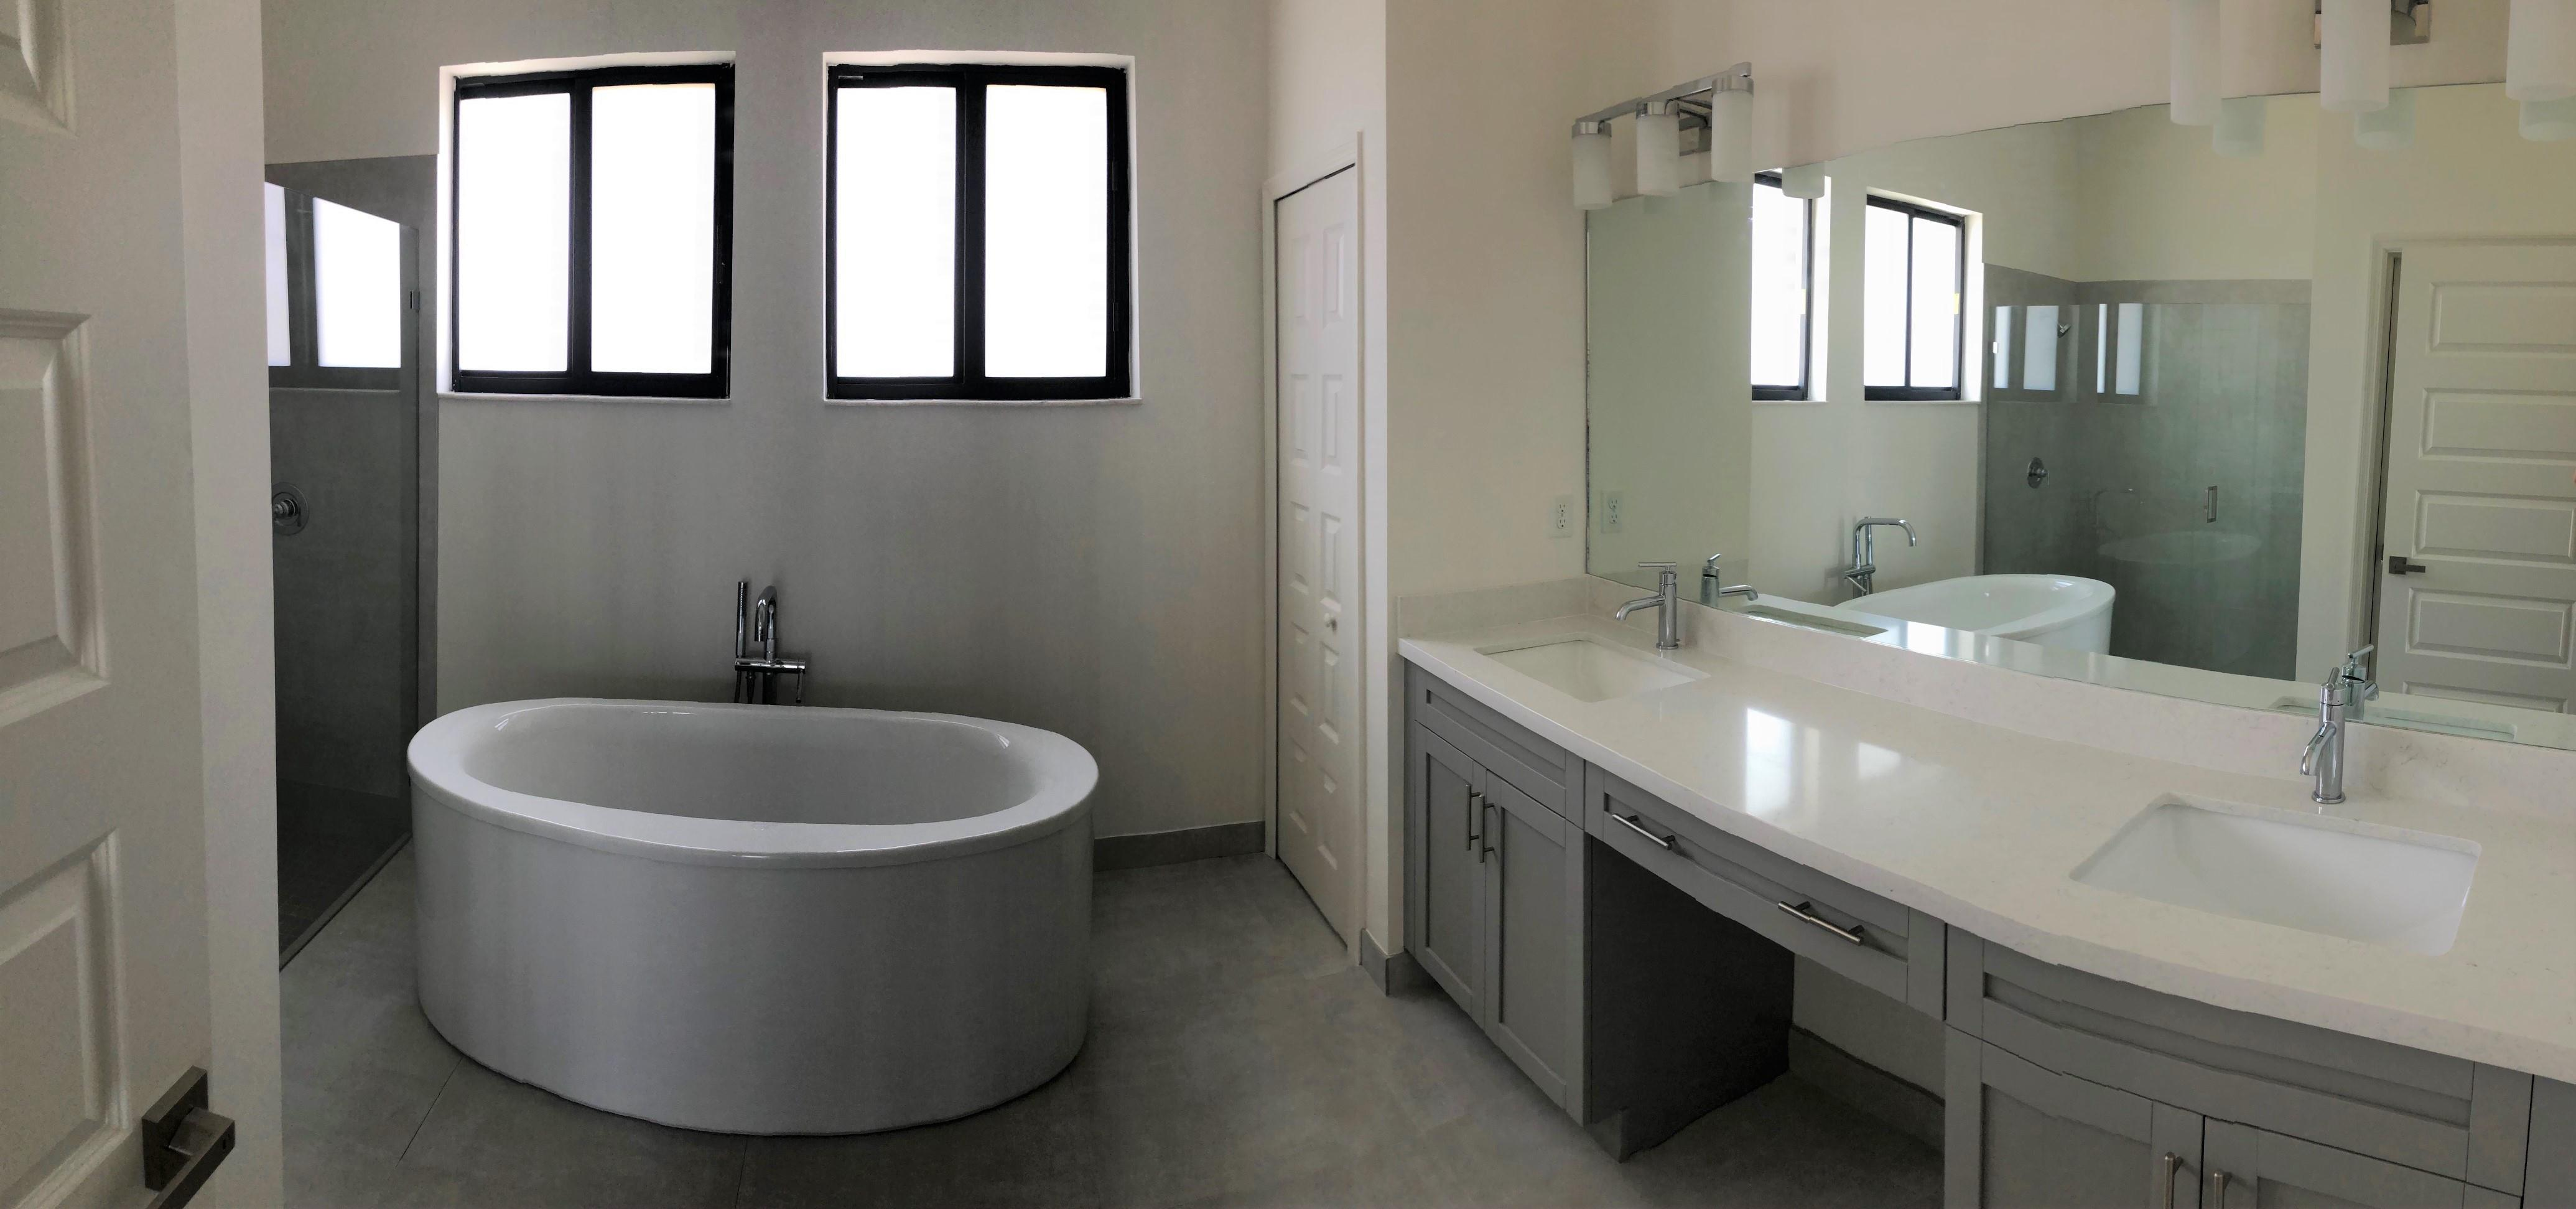 Bathroom featured in The Serenity By Walker HomeBuilders in Miami-Dade County, FL